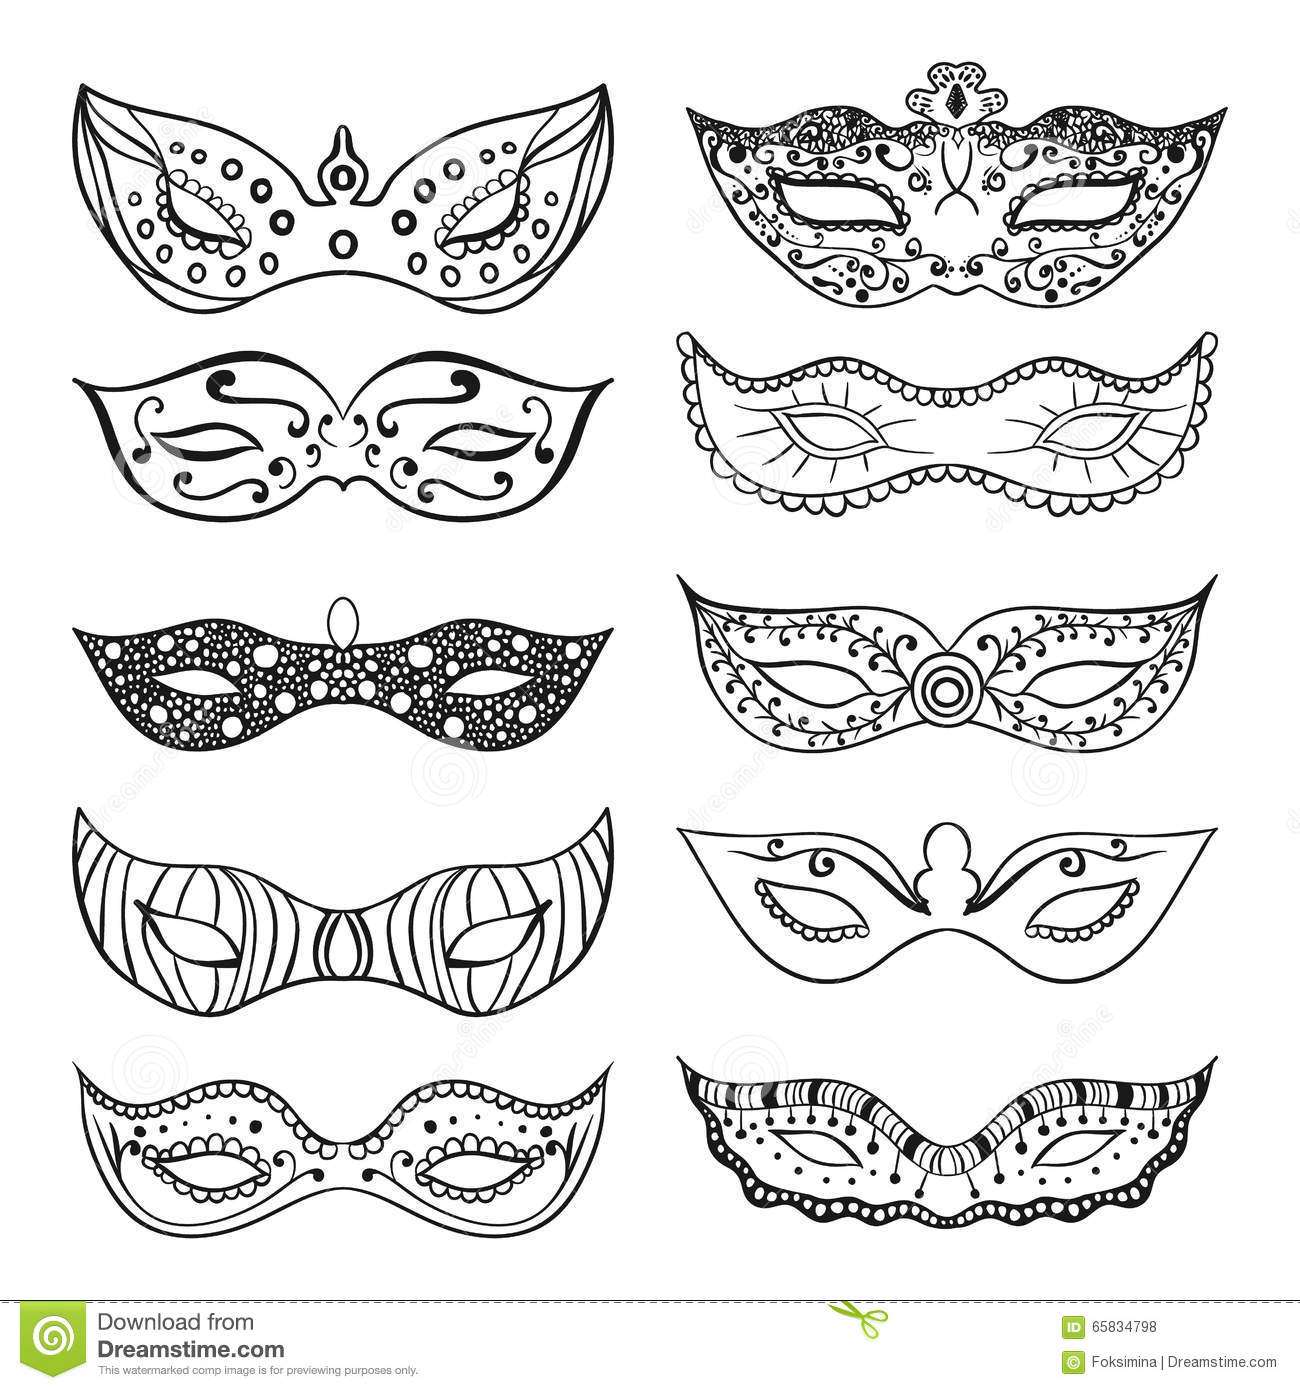 Wonderful Download Set Of Isolated Festive Black Hand Drawn Mask Silhouette On The  White Background. Mardi